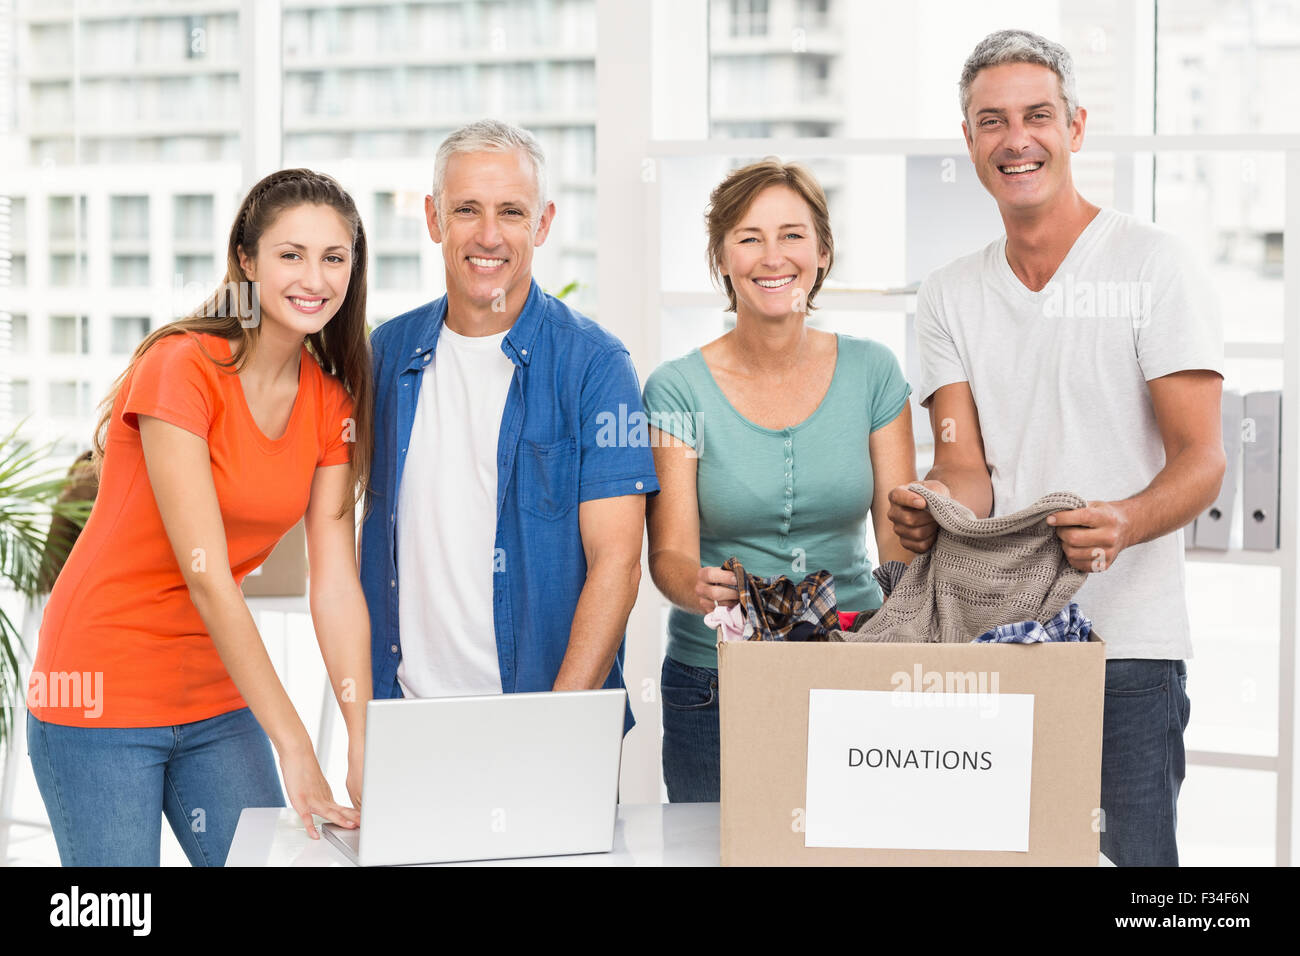 Smiling casual business people with donation box - Stock Image